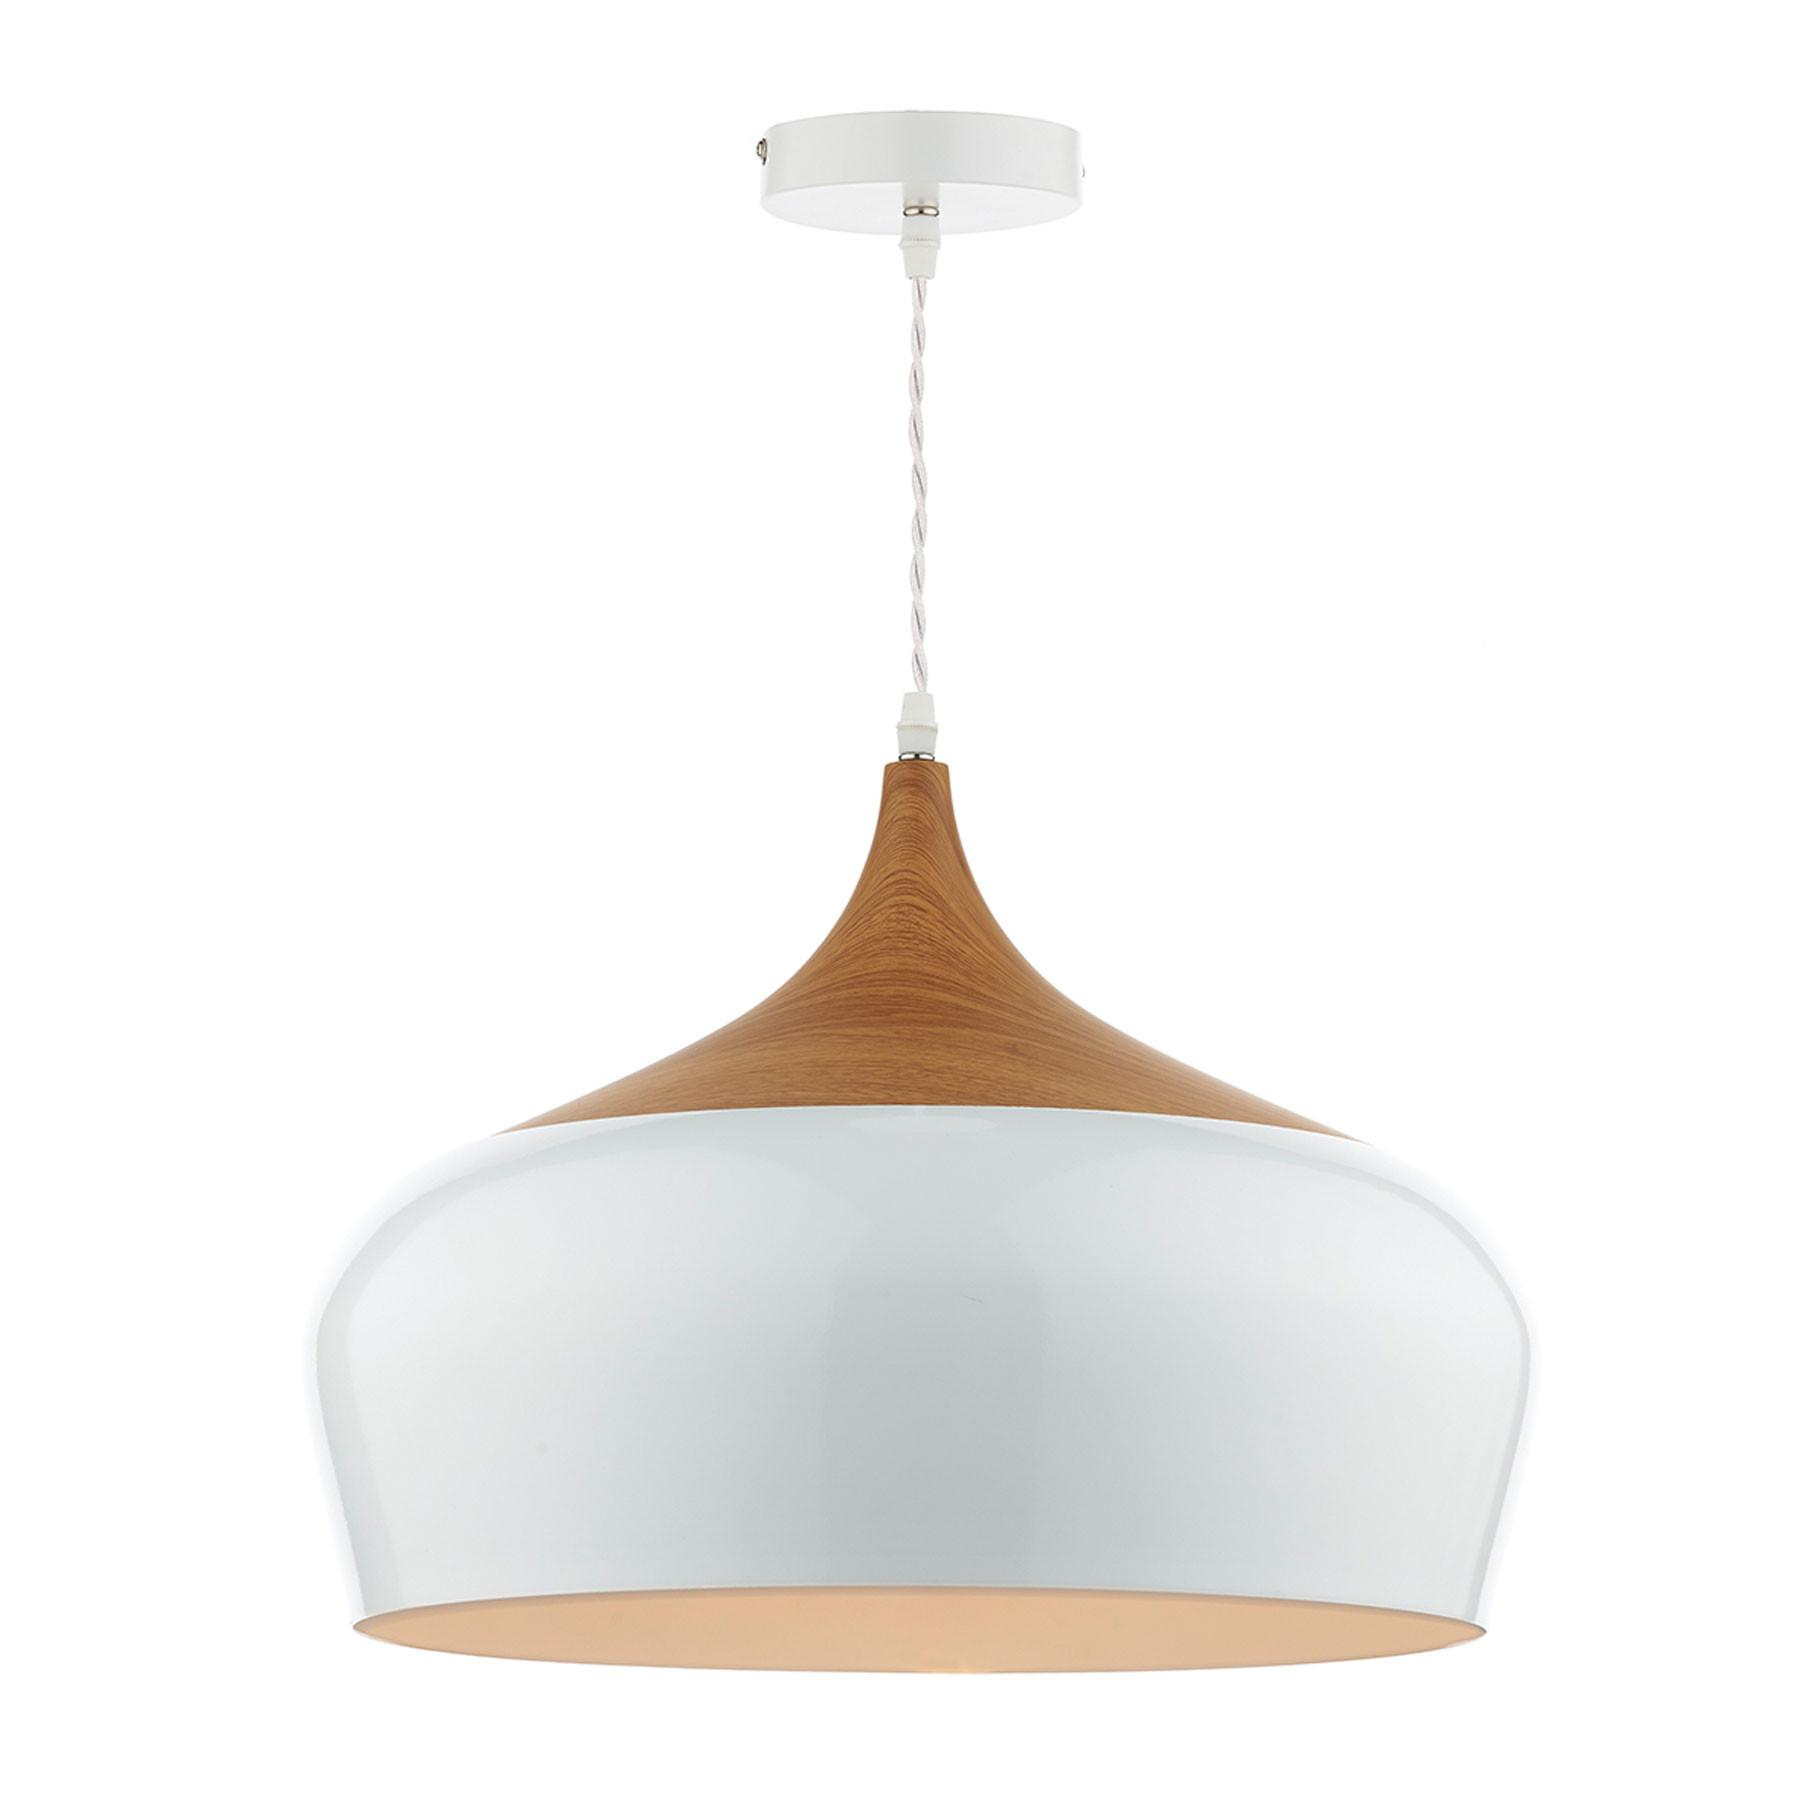 Gaucho White Wood Pendant Light